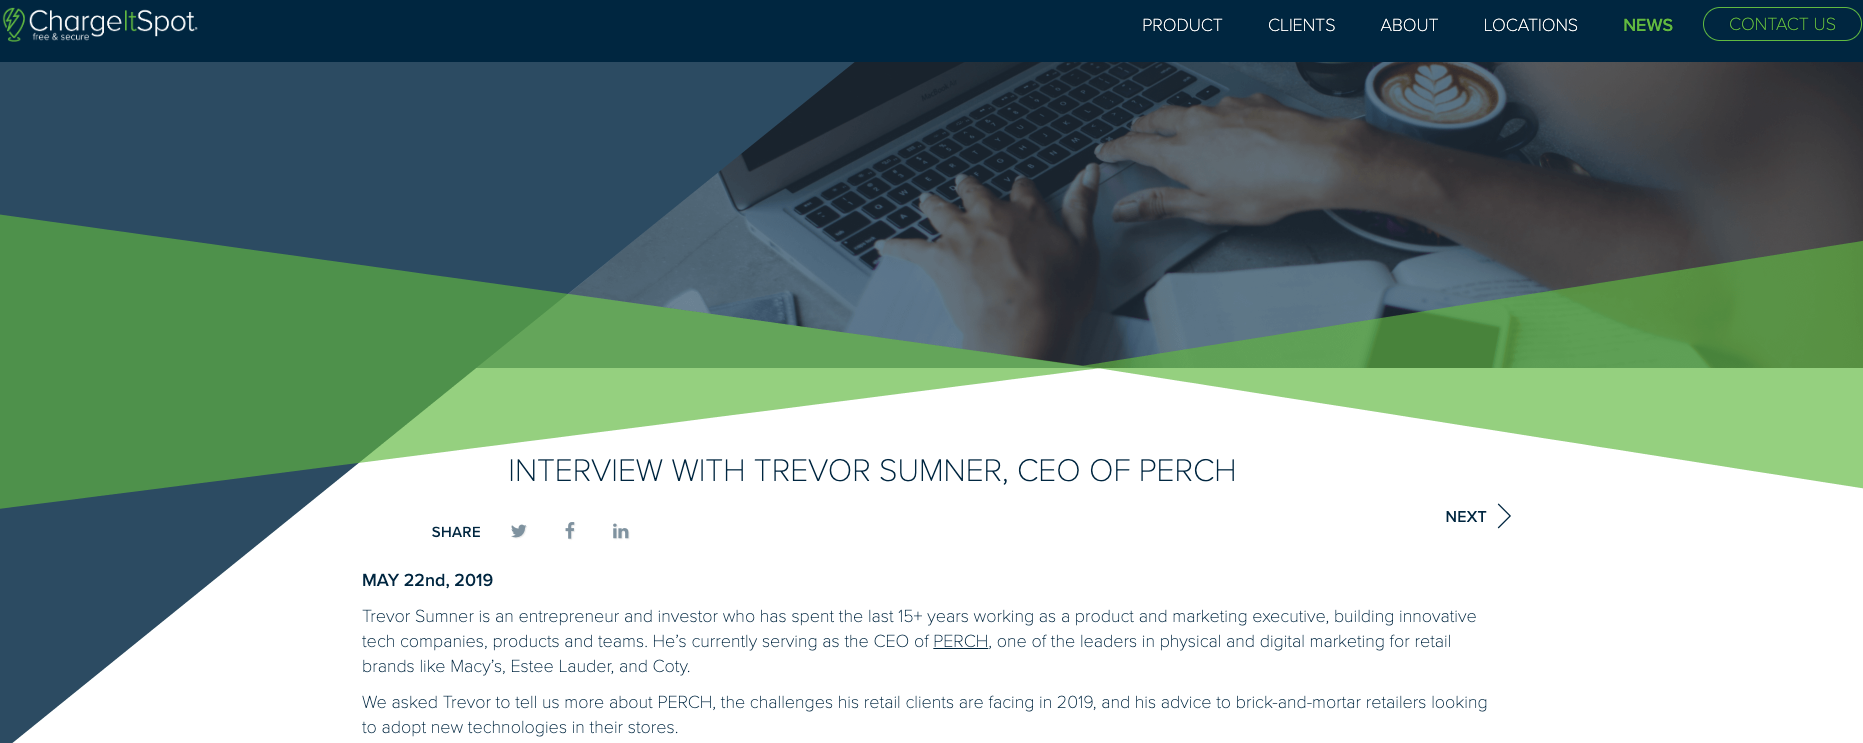 """""""2019 is the year physical retail will take its crown back. If you want to be part of that renaissance, design experiences that make sense to your customers and meet their expectations.""""  Trevor Sumner, CEO of Perch, had the opportunity to speak with ChangeItSpot to share his take on the future of brick and mortar retail.   Read the full article here."""